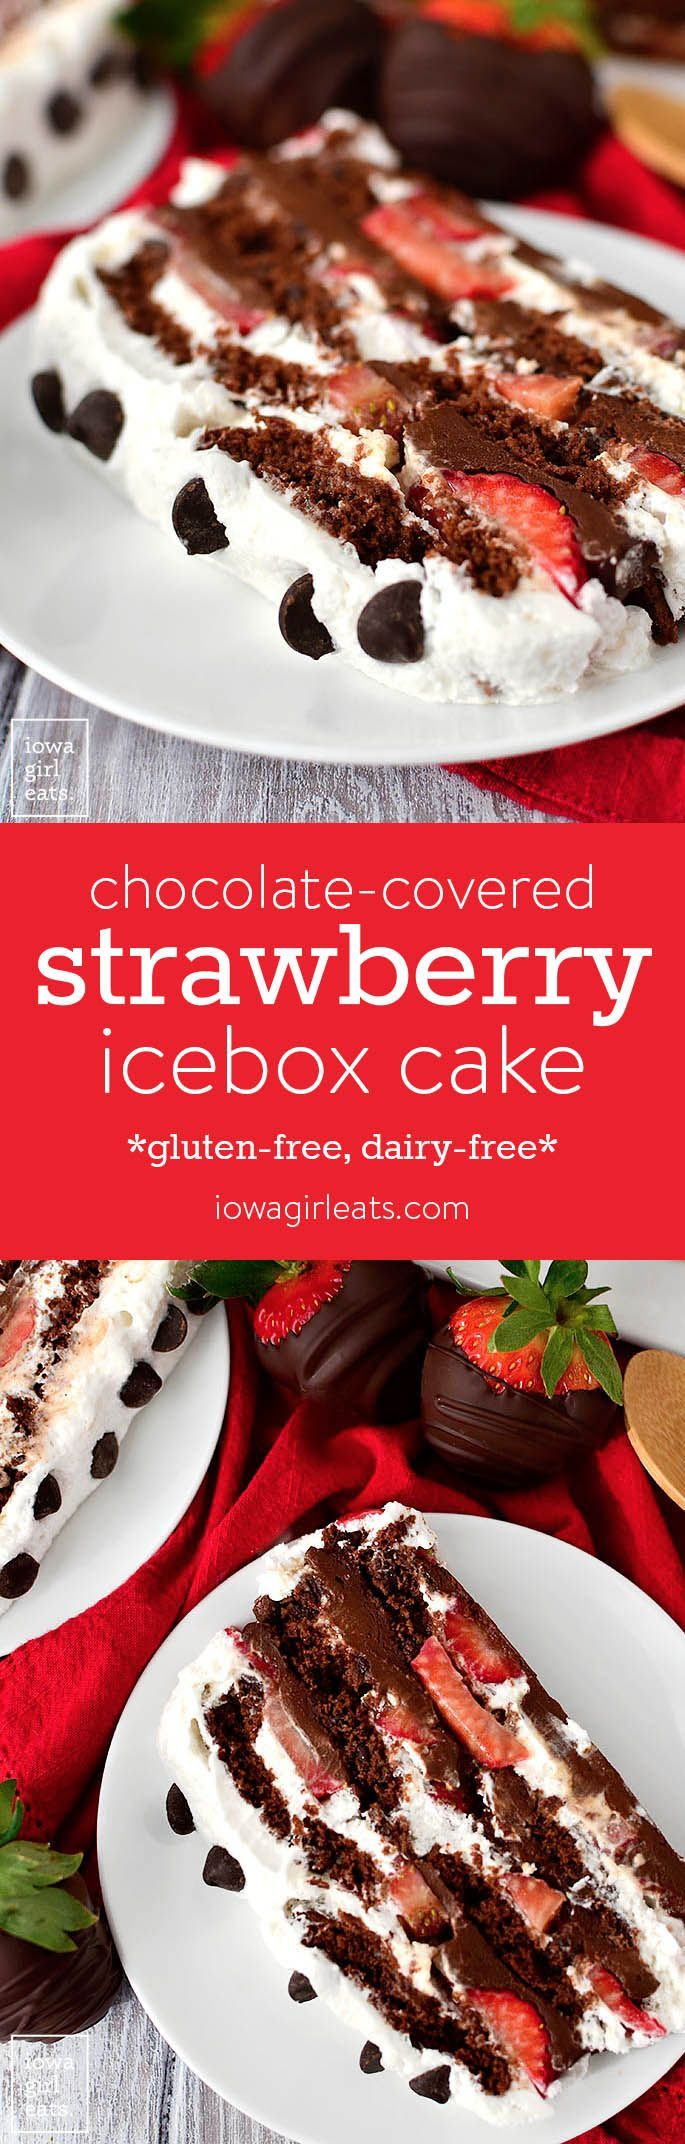 Chocolate-Covered Strawberry Icebox Cake is for serious chocolate lovers only!! Thisgluten-free, dairy-free dessert recipe is decadent, sweet, and packed with chocolate. | iowagirleats.com #glutenfree